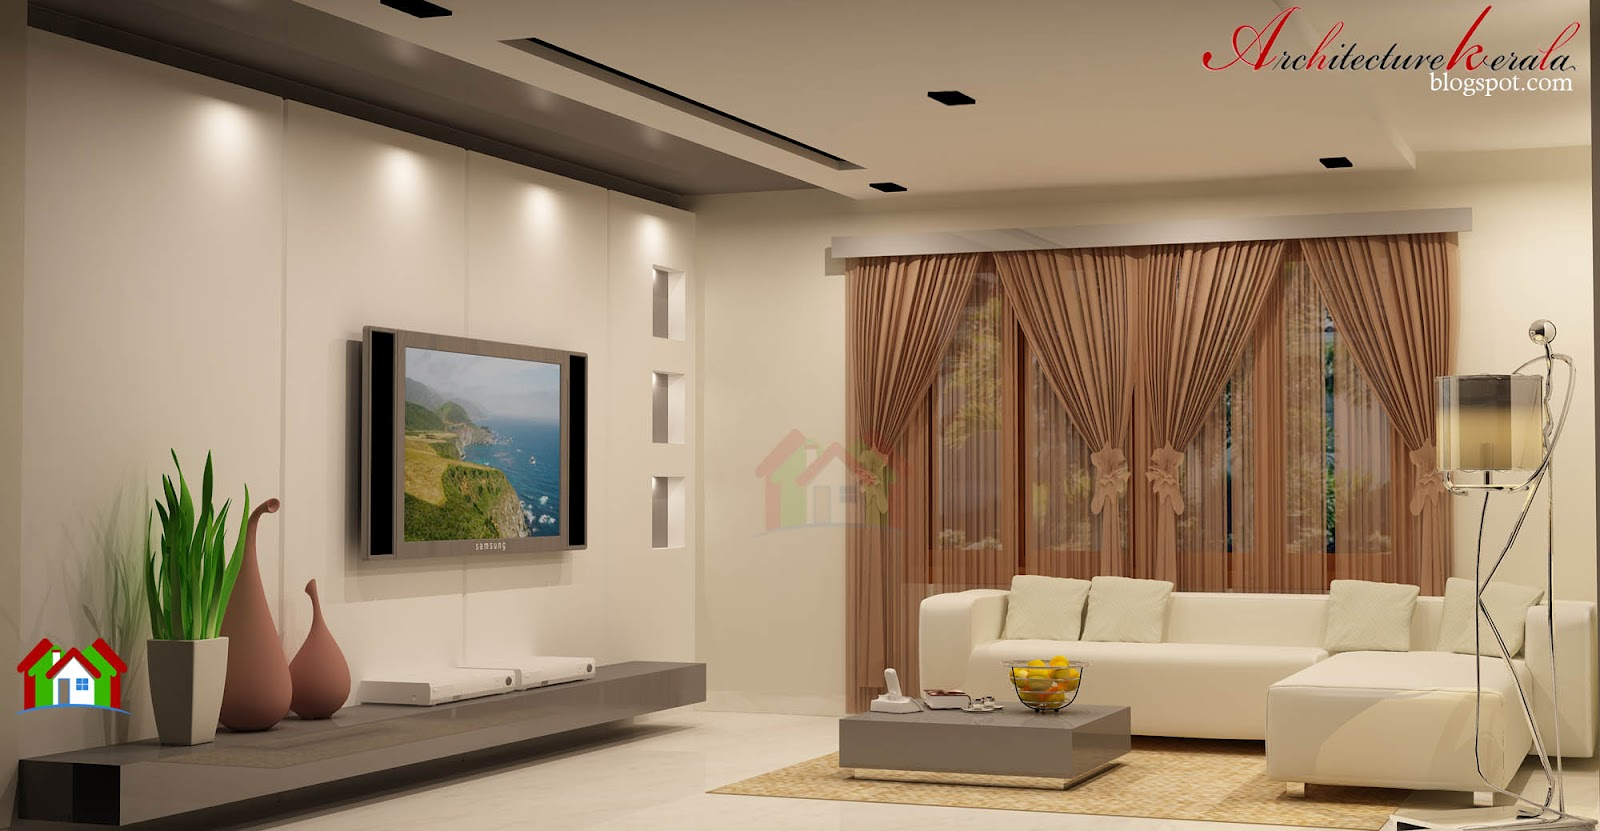 Architecture kerala interior design of living room for Living room designs kerala style